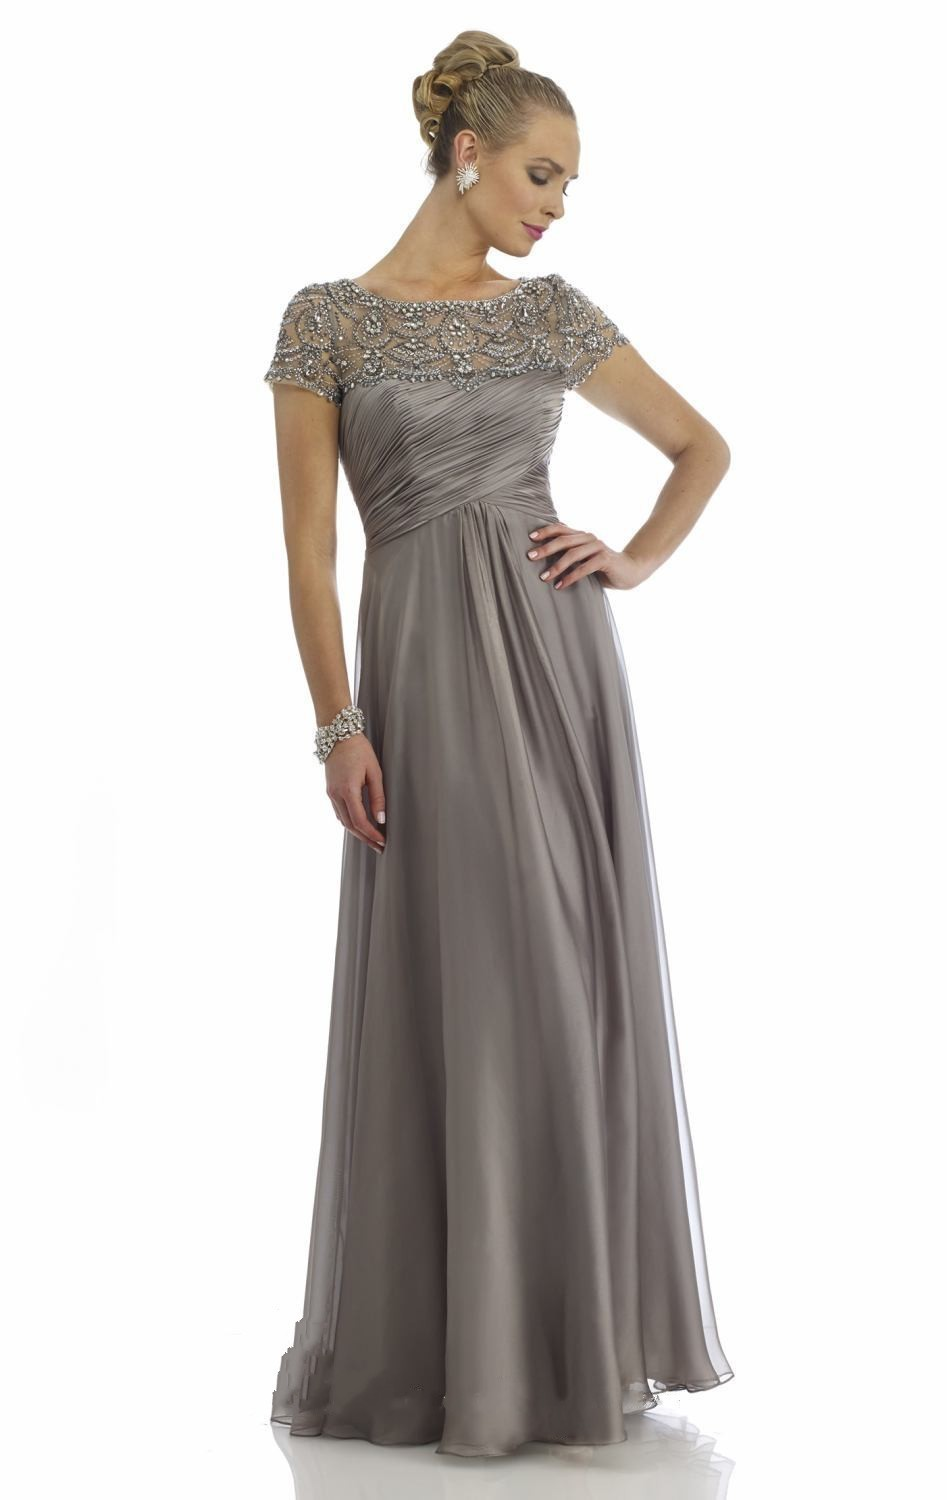 Elegant With Sleeves Beaded Chiffon Long Evening Dress